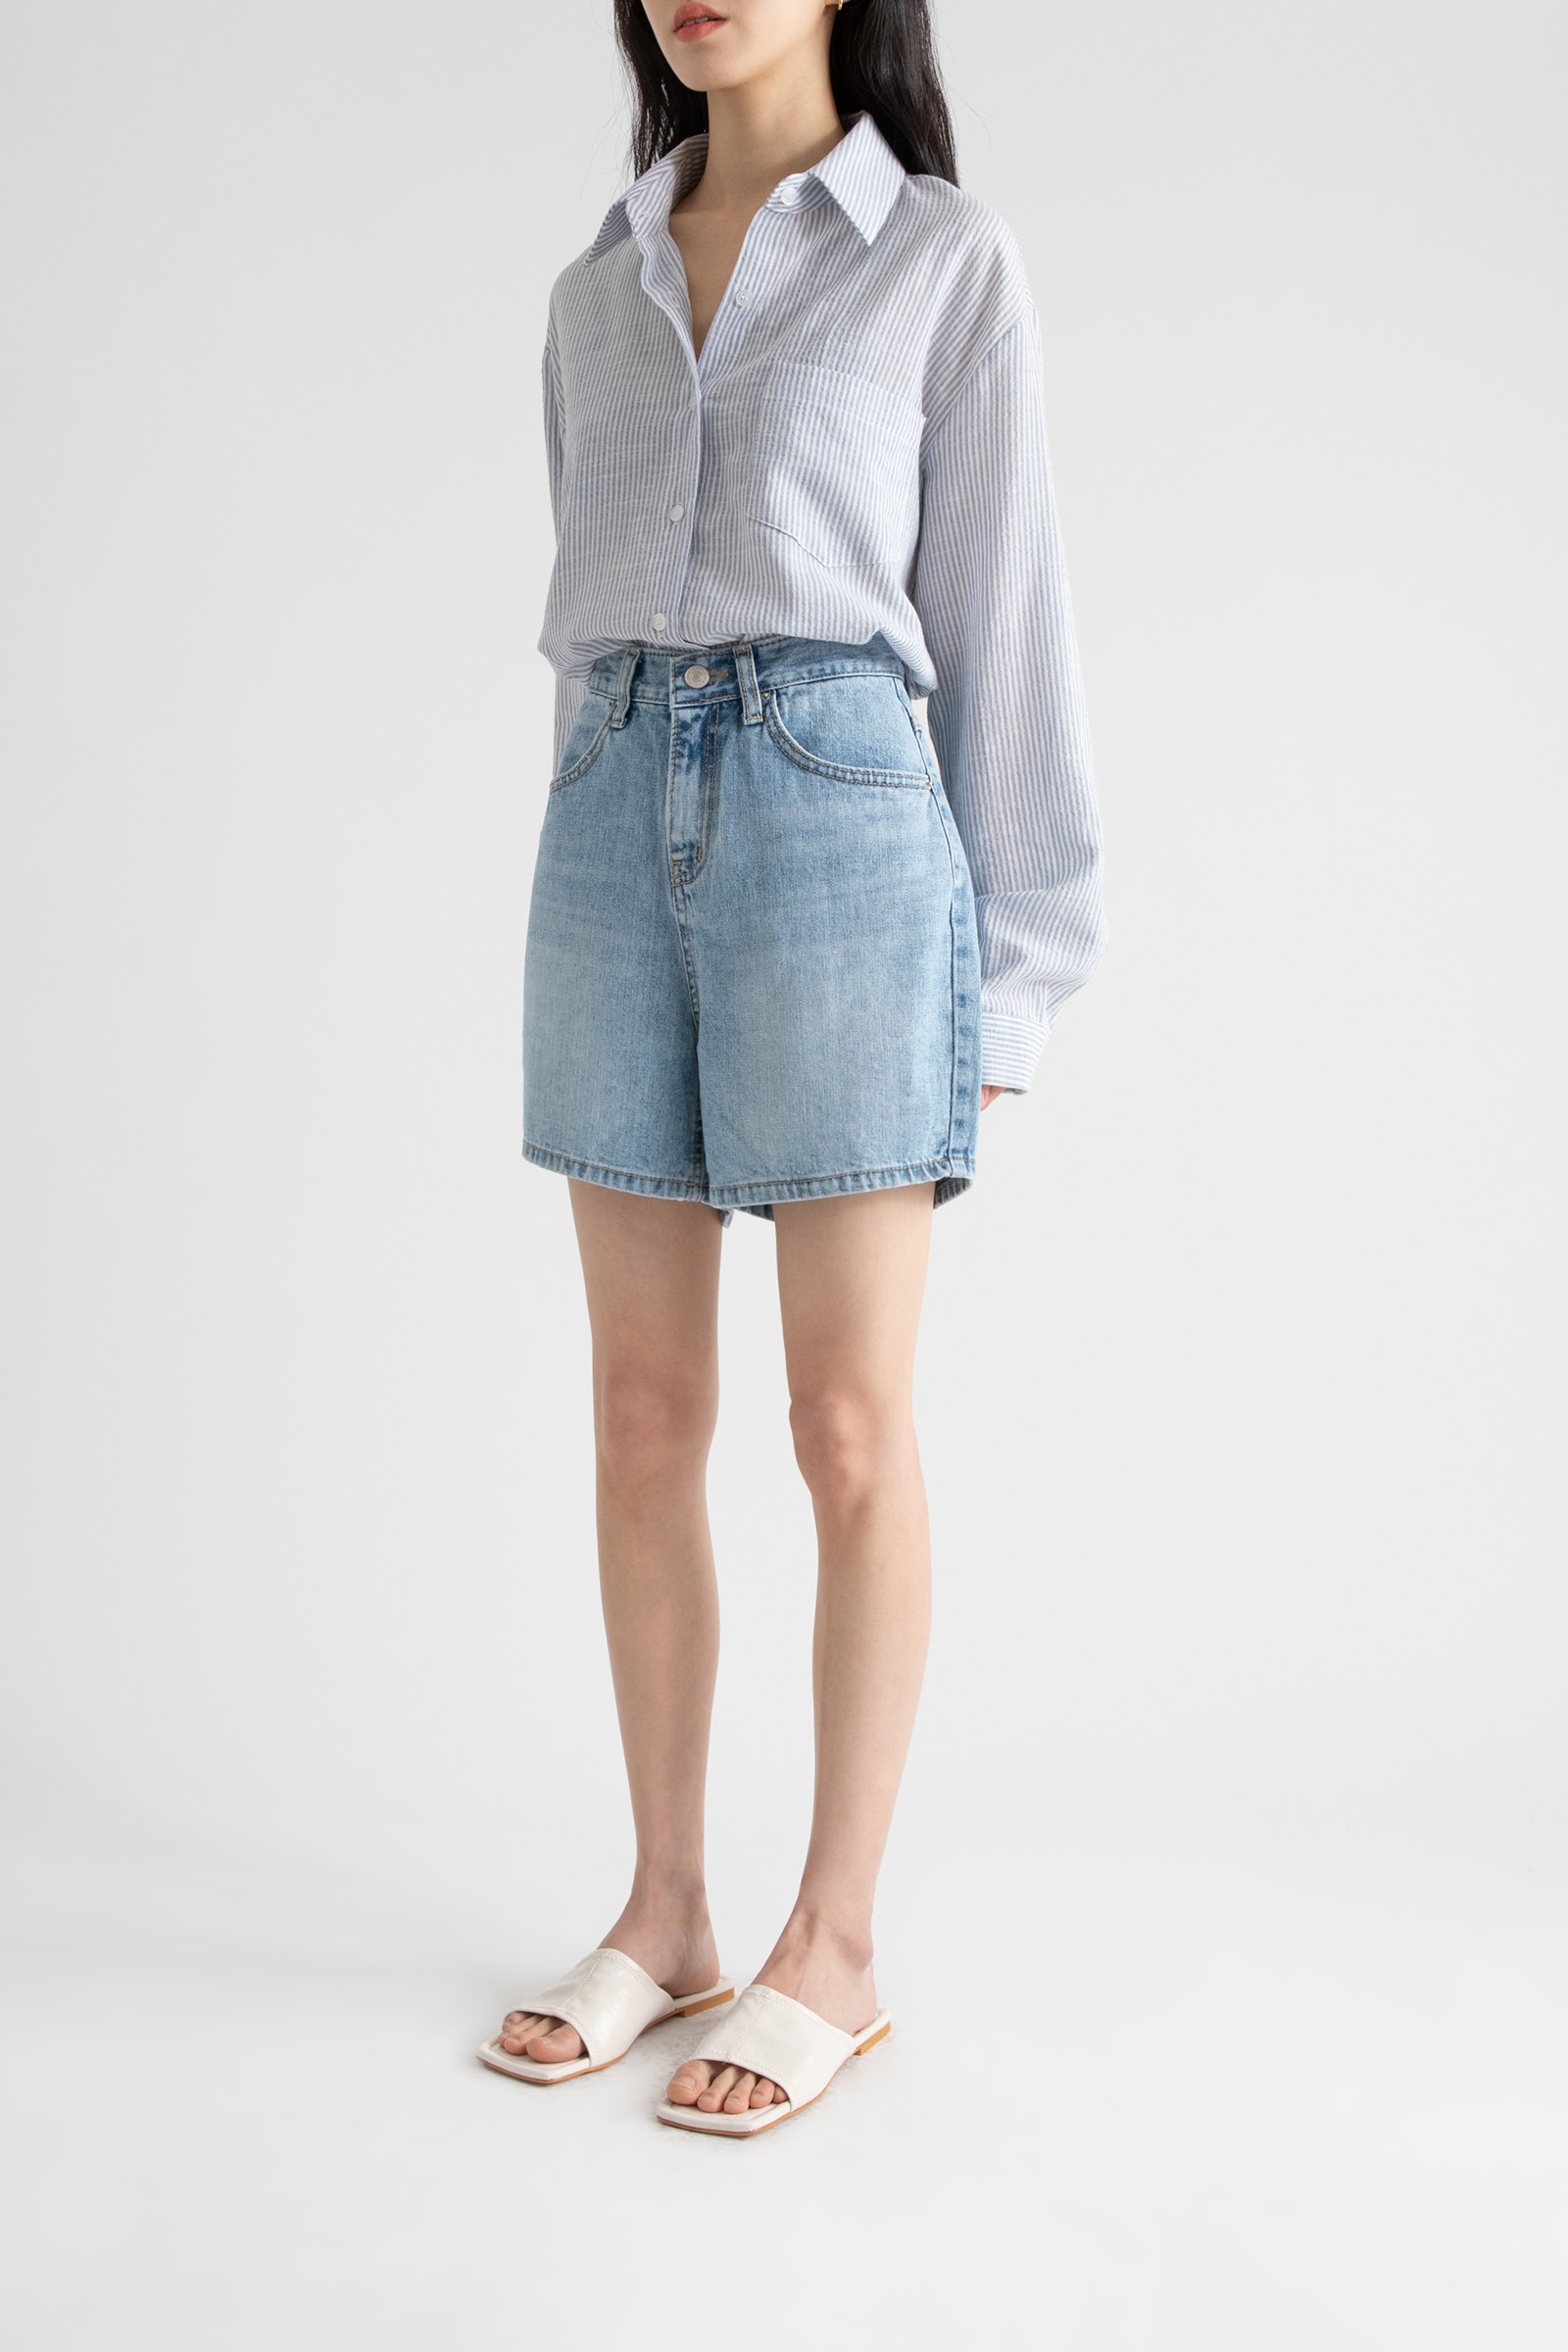 Snack high-rise half jeans